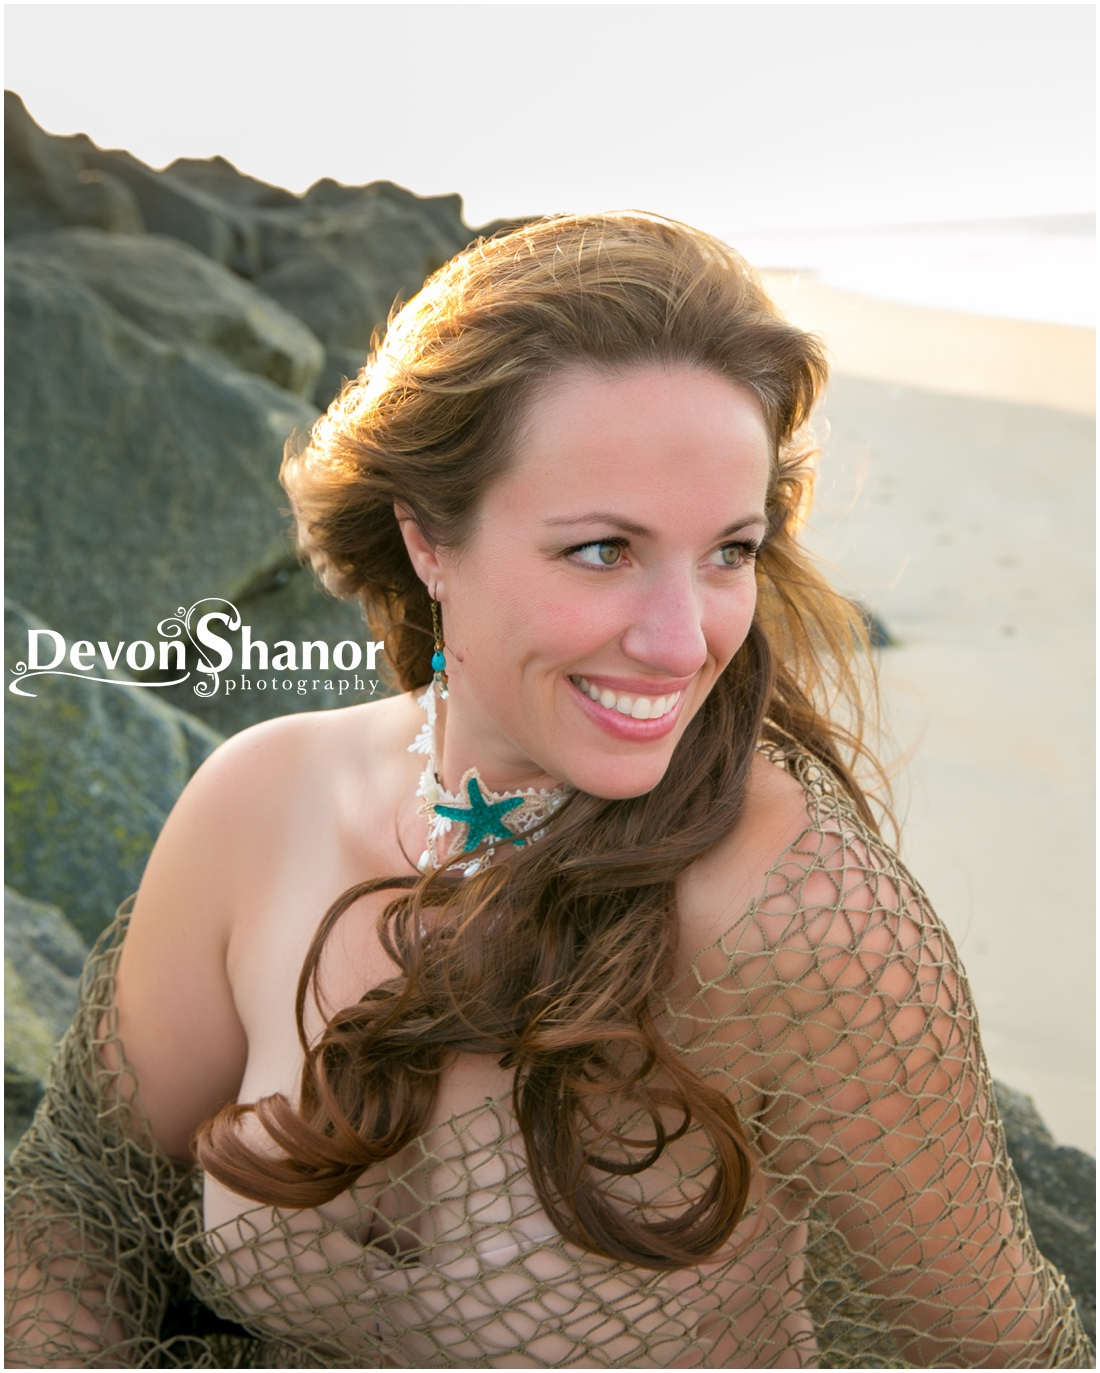 Devon Shanor Blog » Mermaids Wash Ashore In Virginia Beach